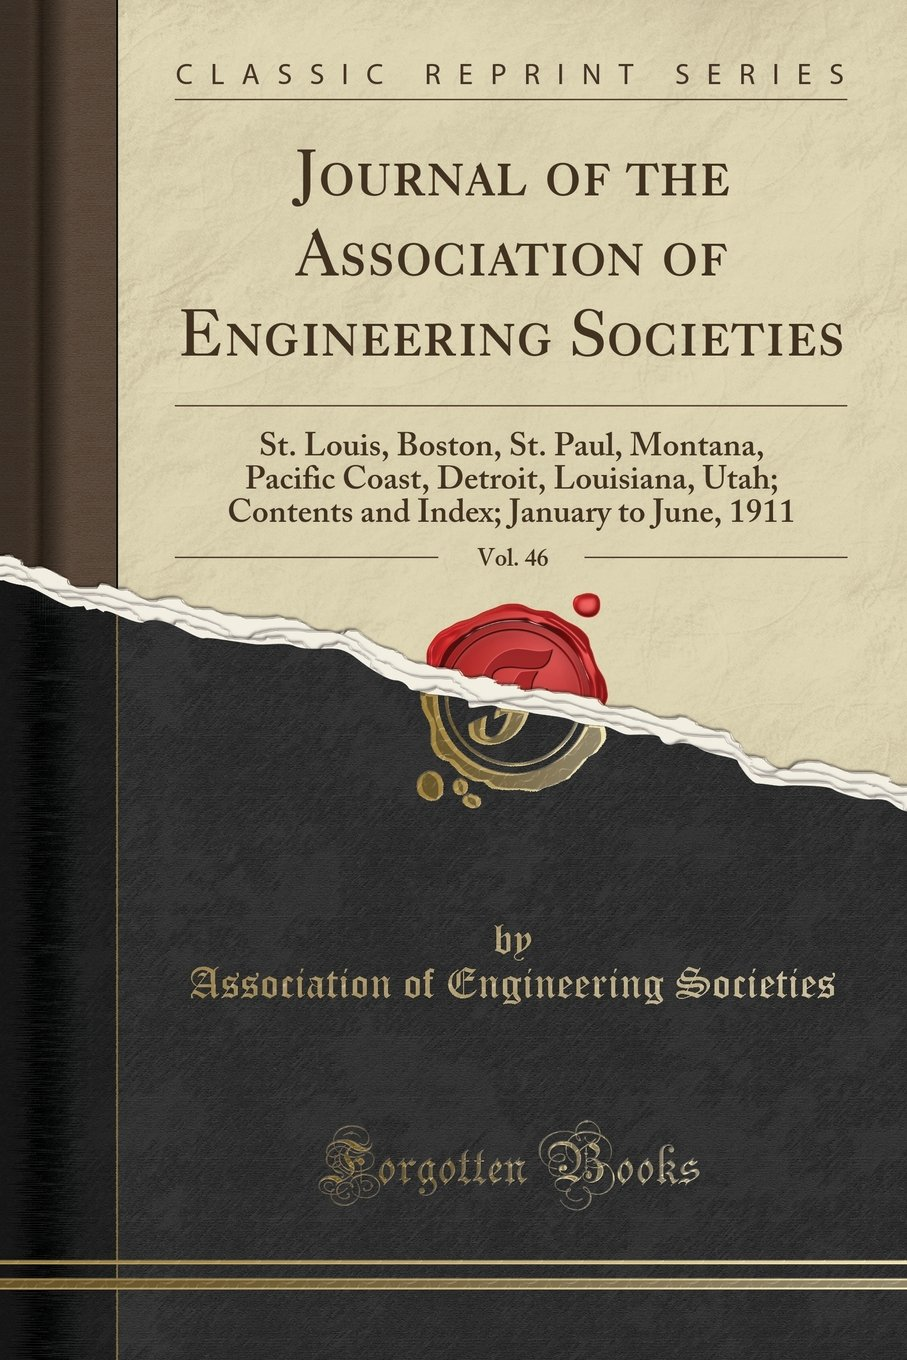 Download Journal of the Association of Engineering Societies, Vol. 46: St. Louis, Boston, St. Paul, Montana, Pacific Coast, Detroit, Louisiana, Utah; Contents and Index; January to June, 1911 (Classic Reprint) ebook